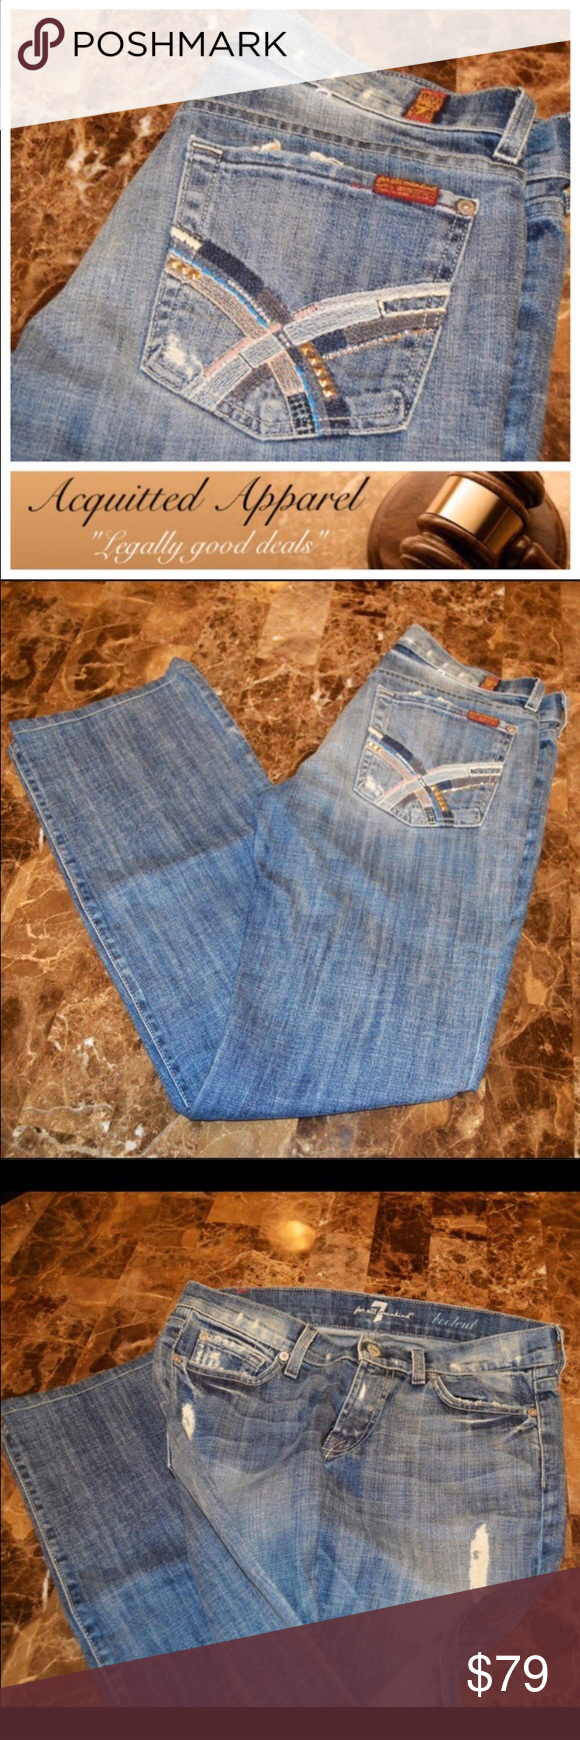 85939a22938 🆕 Bling Distressed 7 For All Mankind Jeans 32